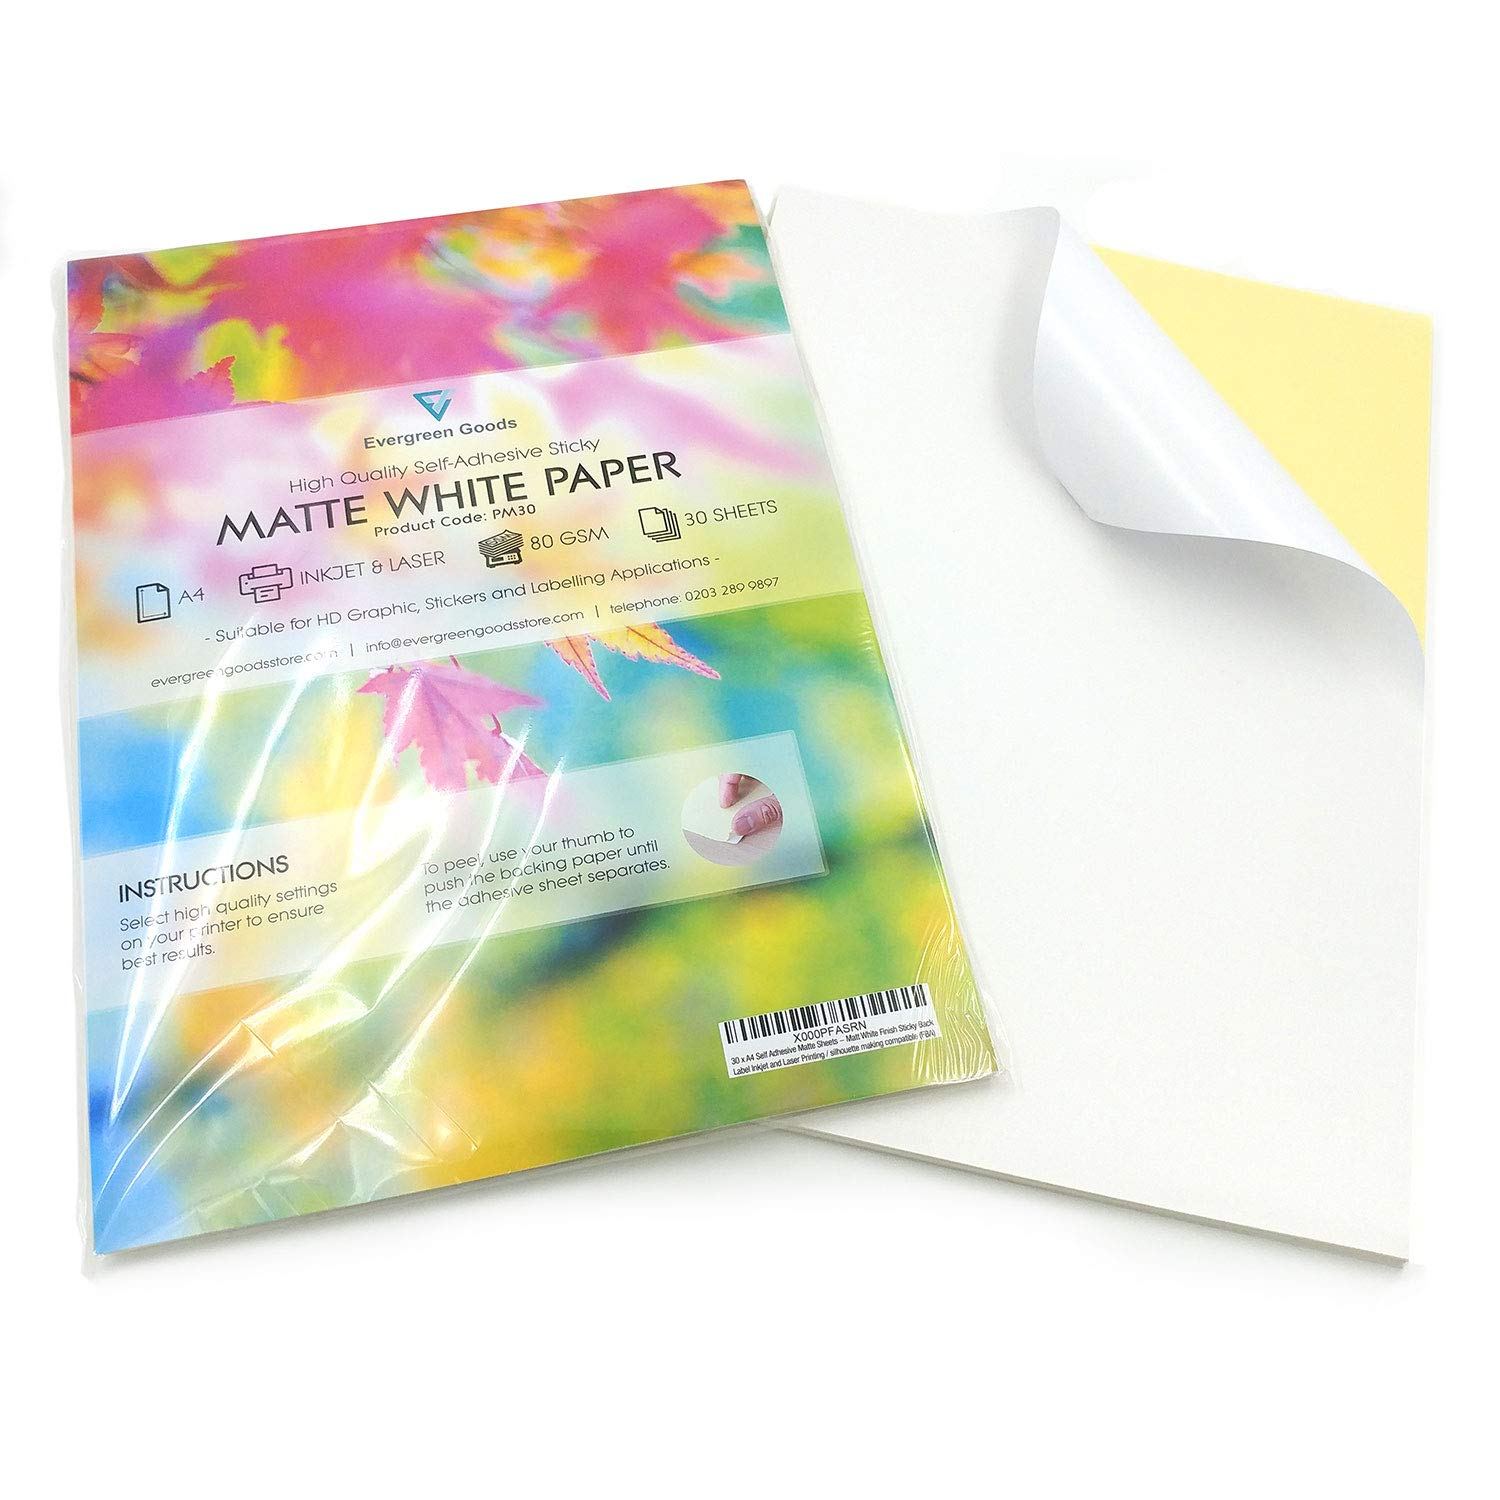 30 x A4 Self Adhesive Matte Sheets - Matt White Finish Sticky Back Label Inkjet and Laser Printing / silhouette making compatible (FBA) Evergreen Goods